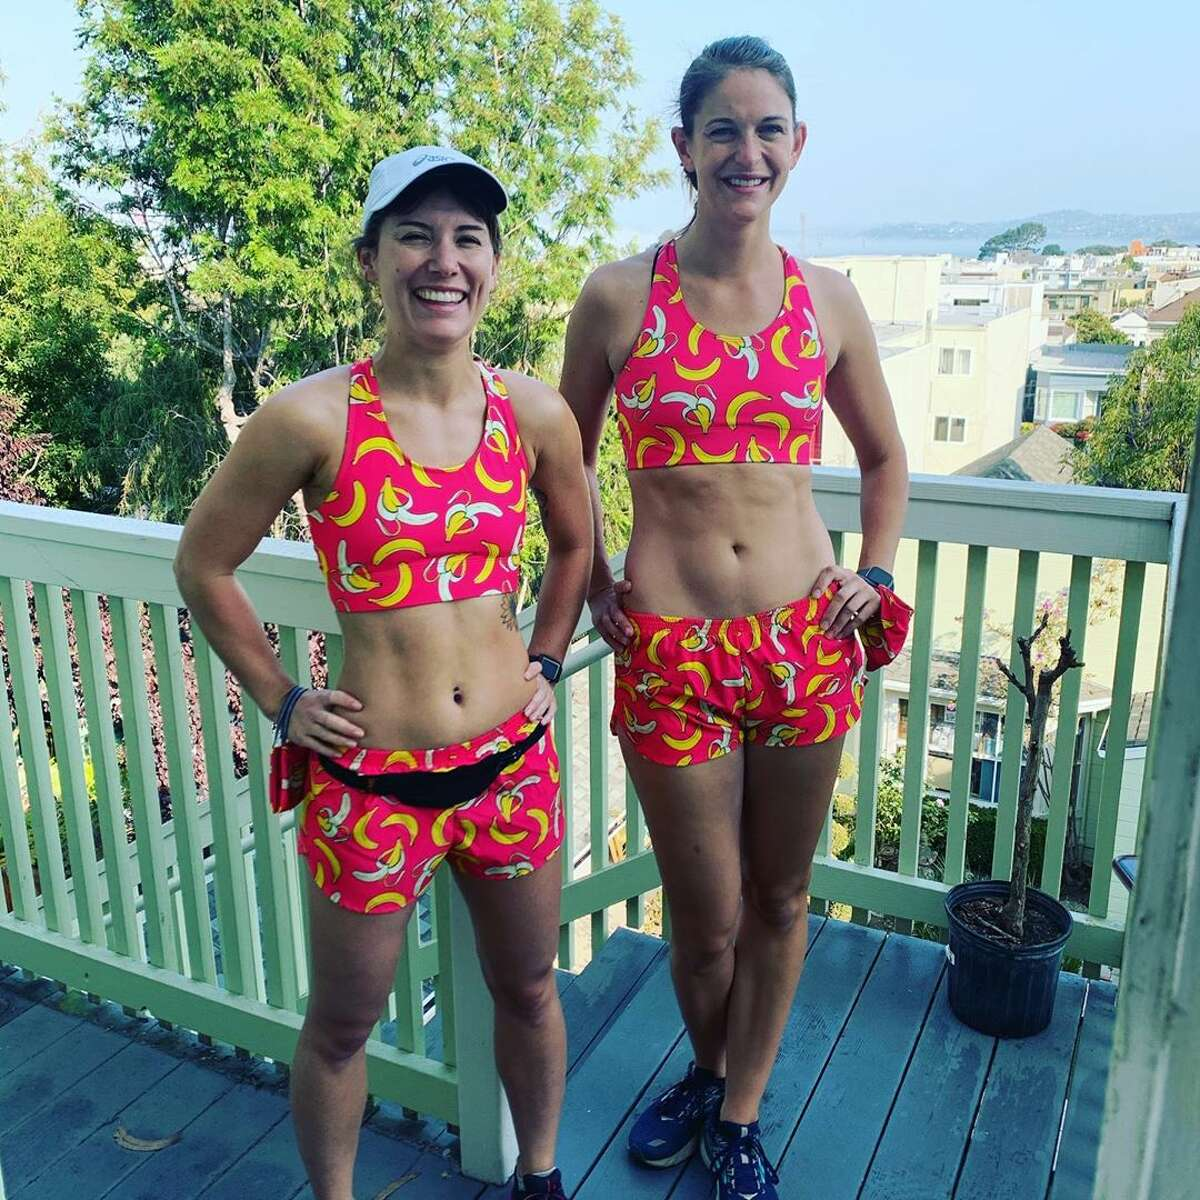 Megan Sweeney, who ran this year's Bay to Breakers with one of her best friends, said